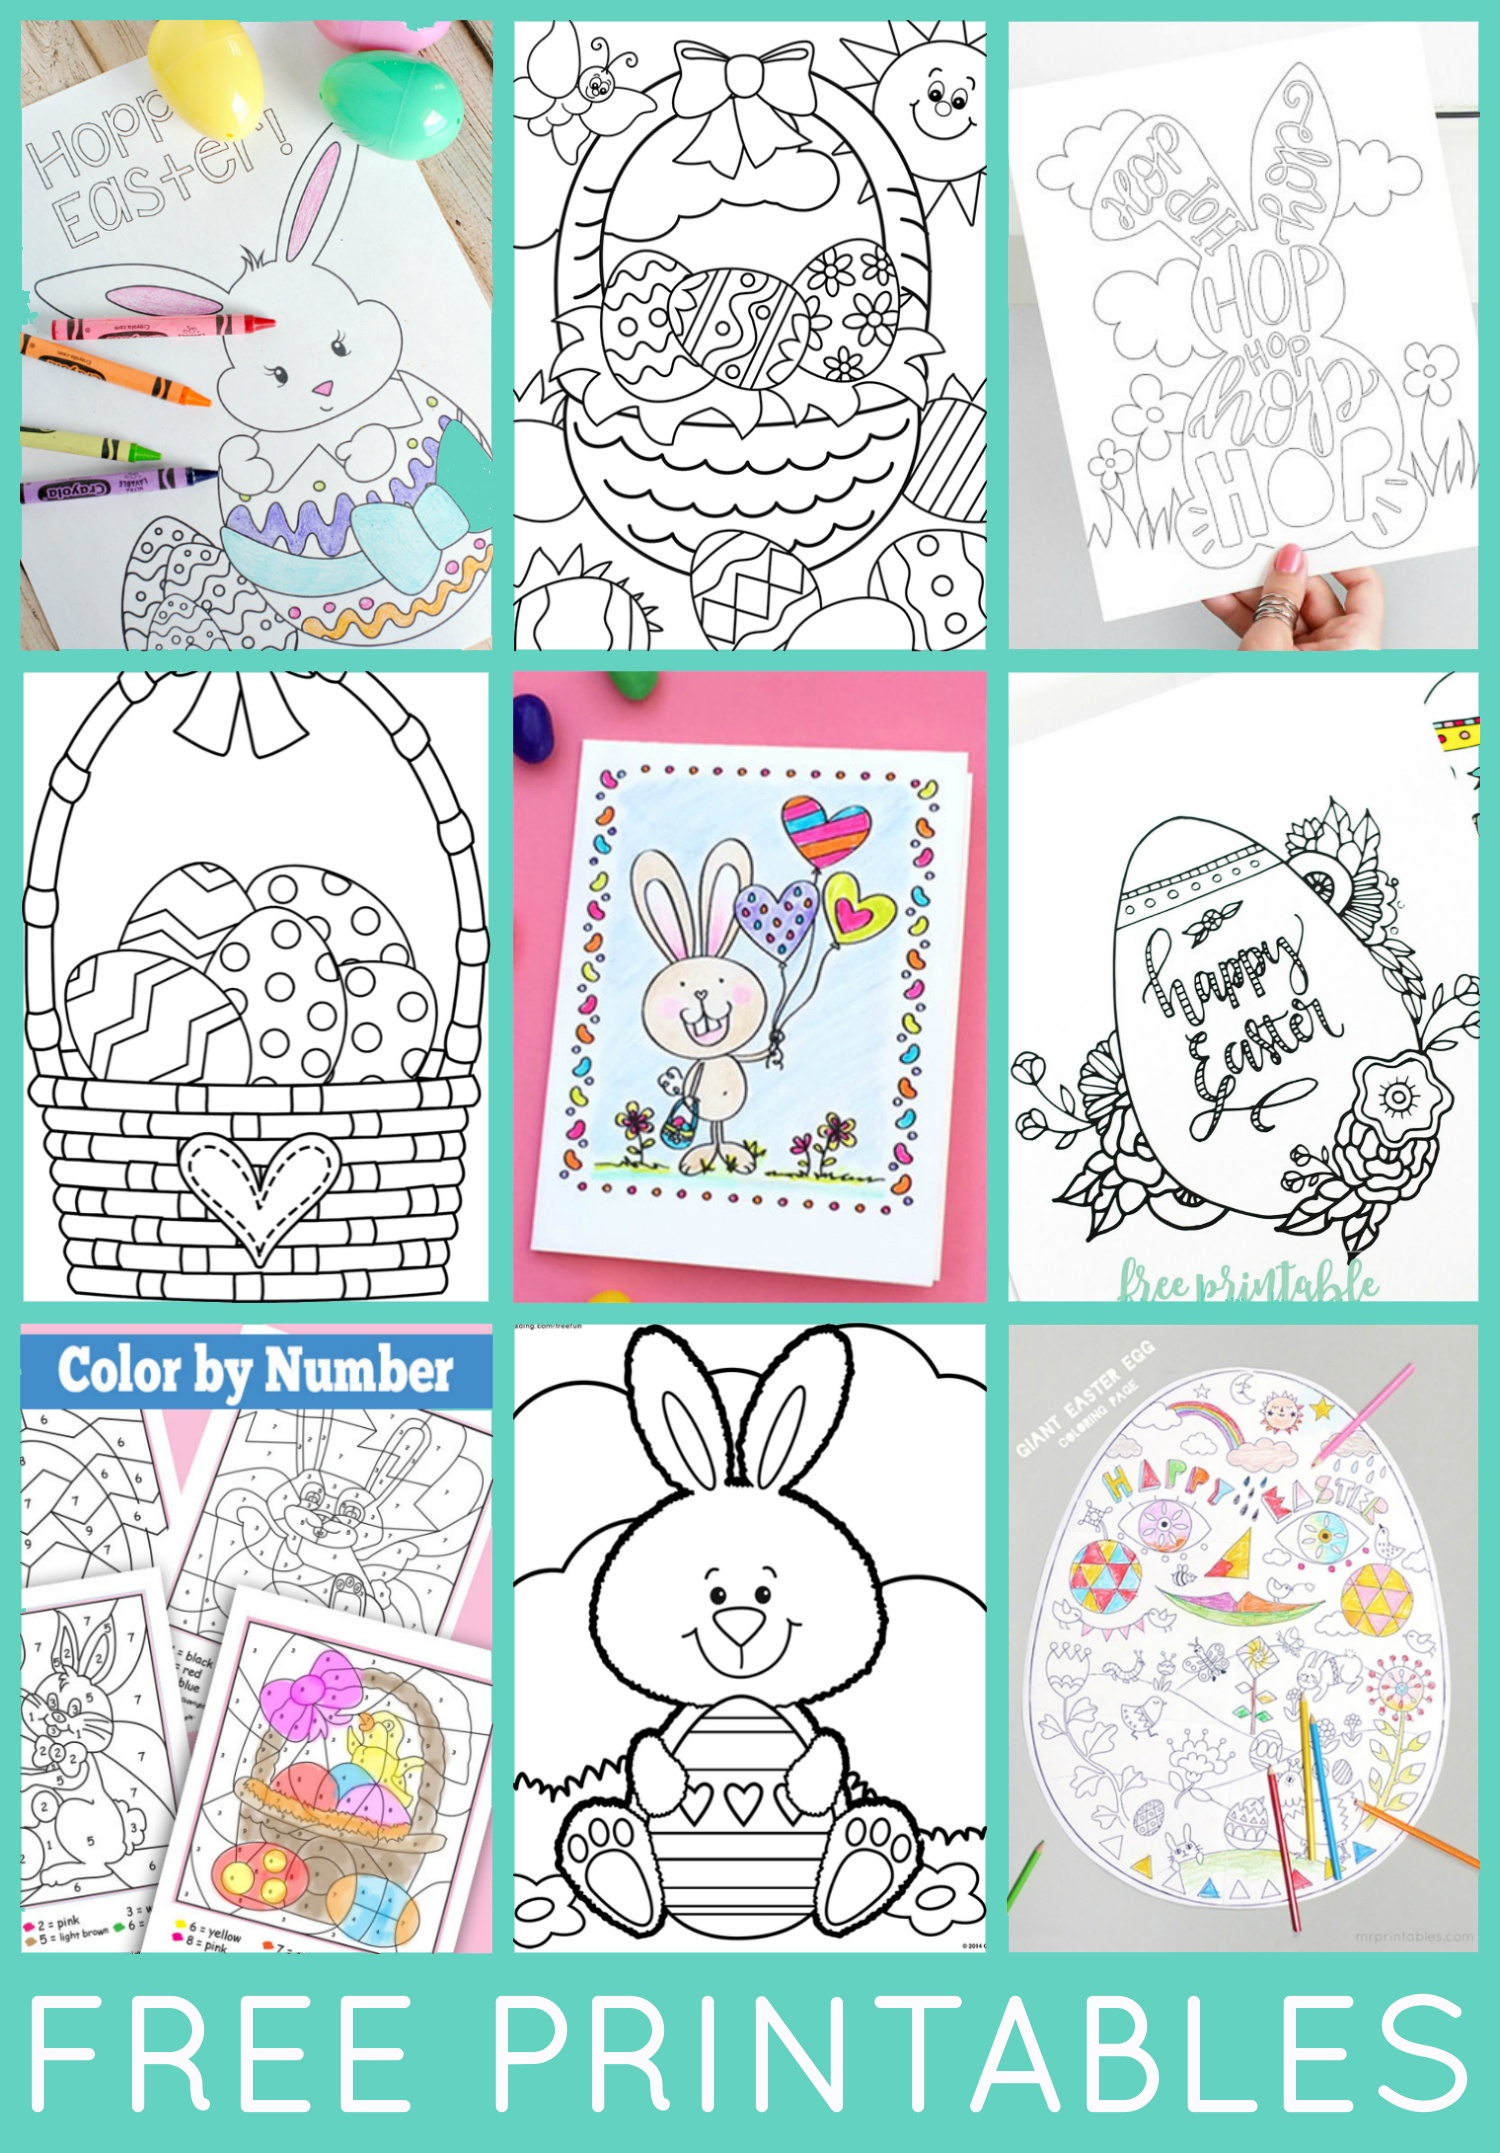 Free Easter Coloring Pages - Happiness Is Homemade - Free Printables For Kids